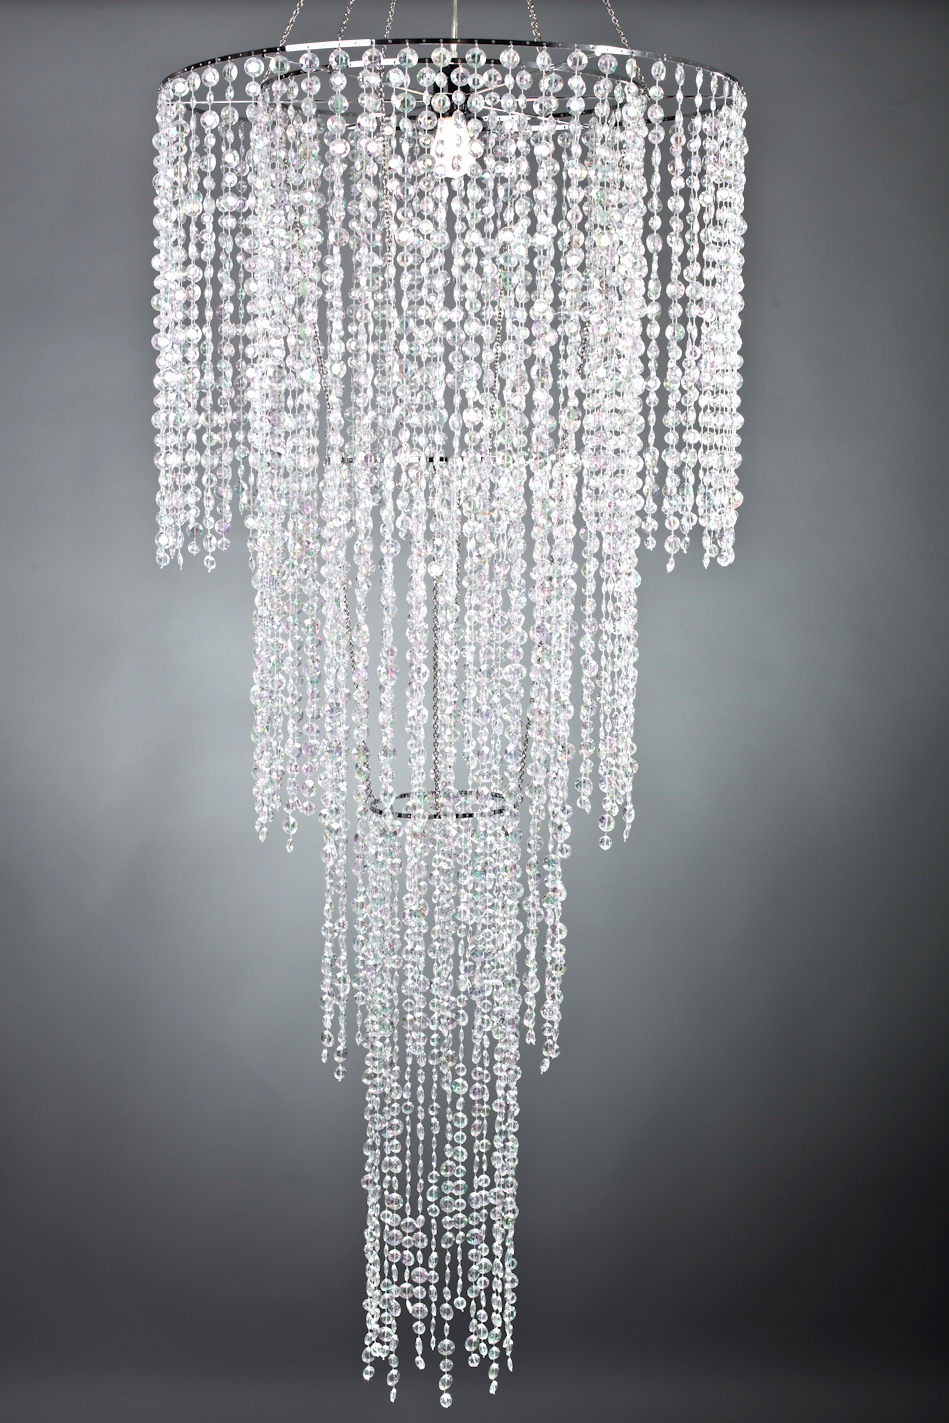 large 4 tier acrylic chandelier tent lighting and